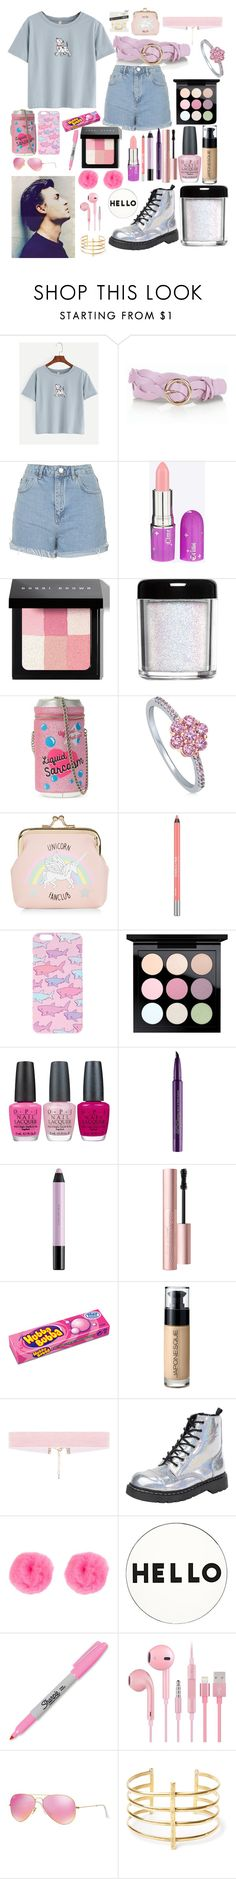 """""""Untitled #209"""" by isobelle206 ❤ liked on Polyvore featuring WithChic, Talbots, Topshop, Lime Crime, Bobbi Brown Cosmetics, Skinnydip, BERRICLE, New Look, Urban Decay and MAC Cosmetics"""